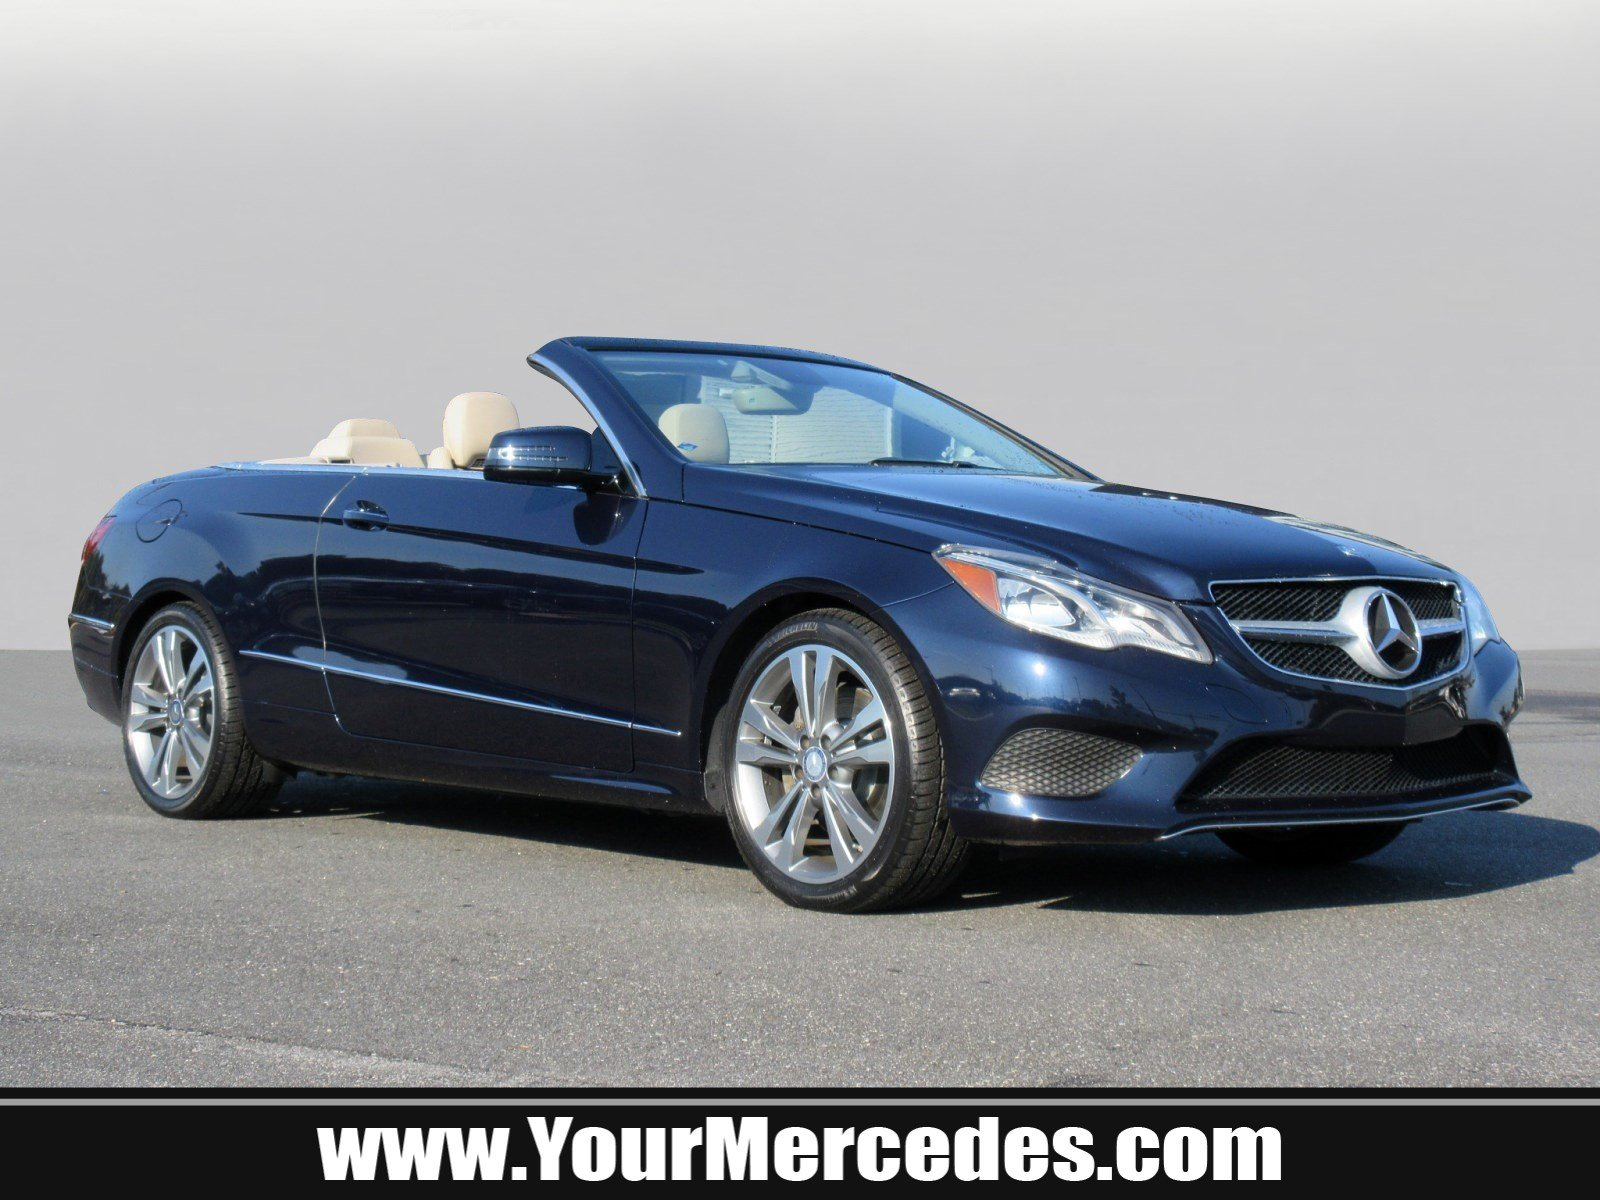 Certified Pre Owned 2014 Mercedes Benz E Class E 350 CABRIOLET in